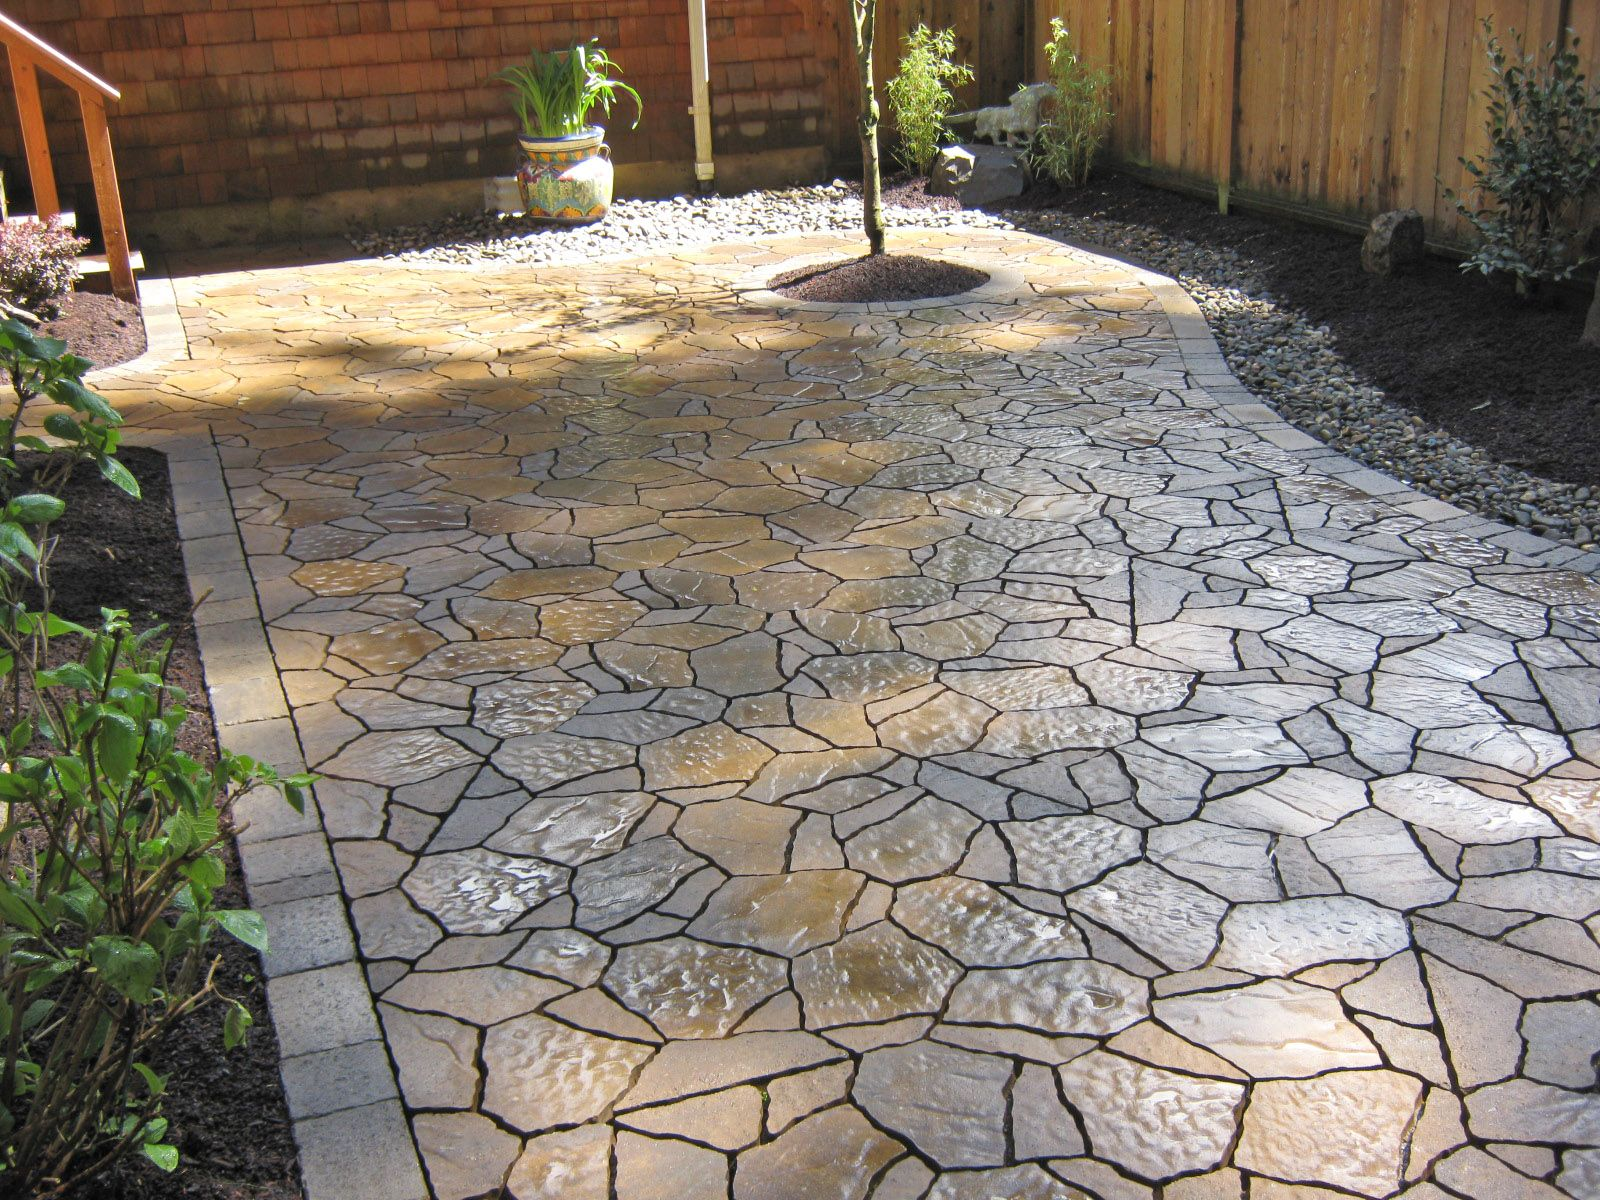 Stone patio ideas landscape archives dennis 39 7 dees for Paving ideas for small gardens